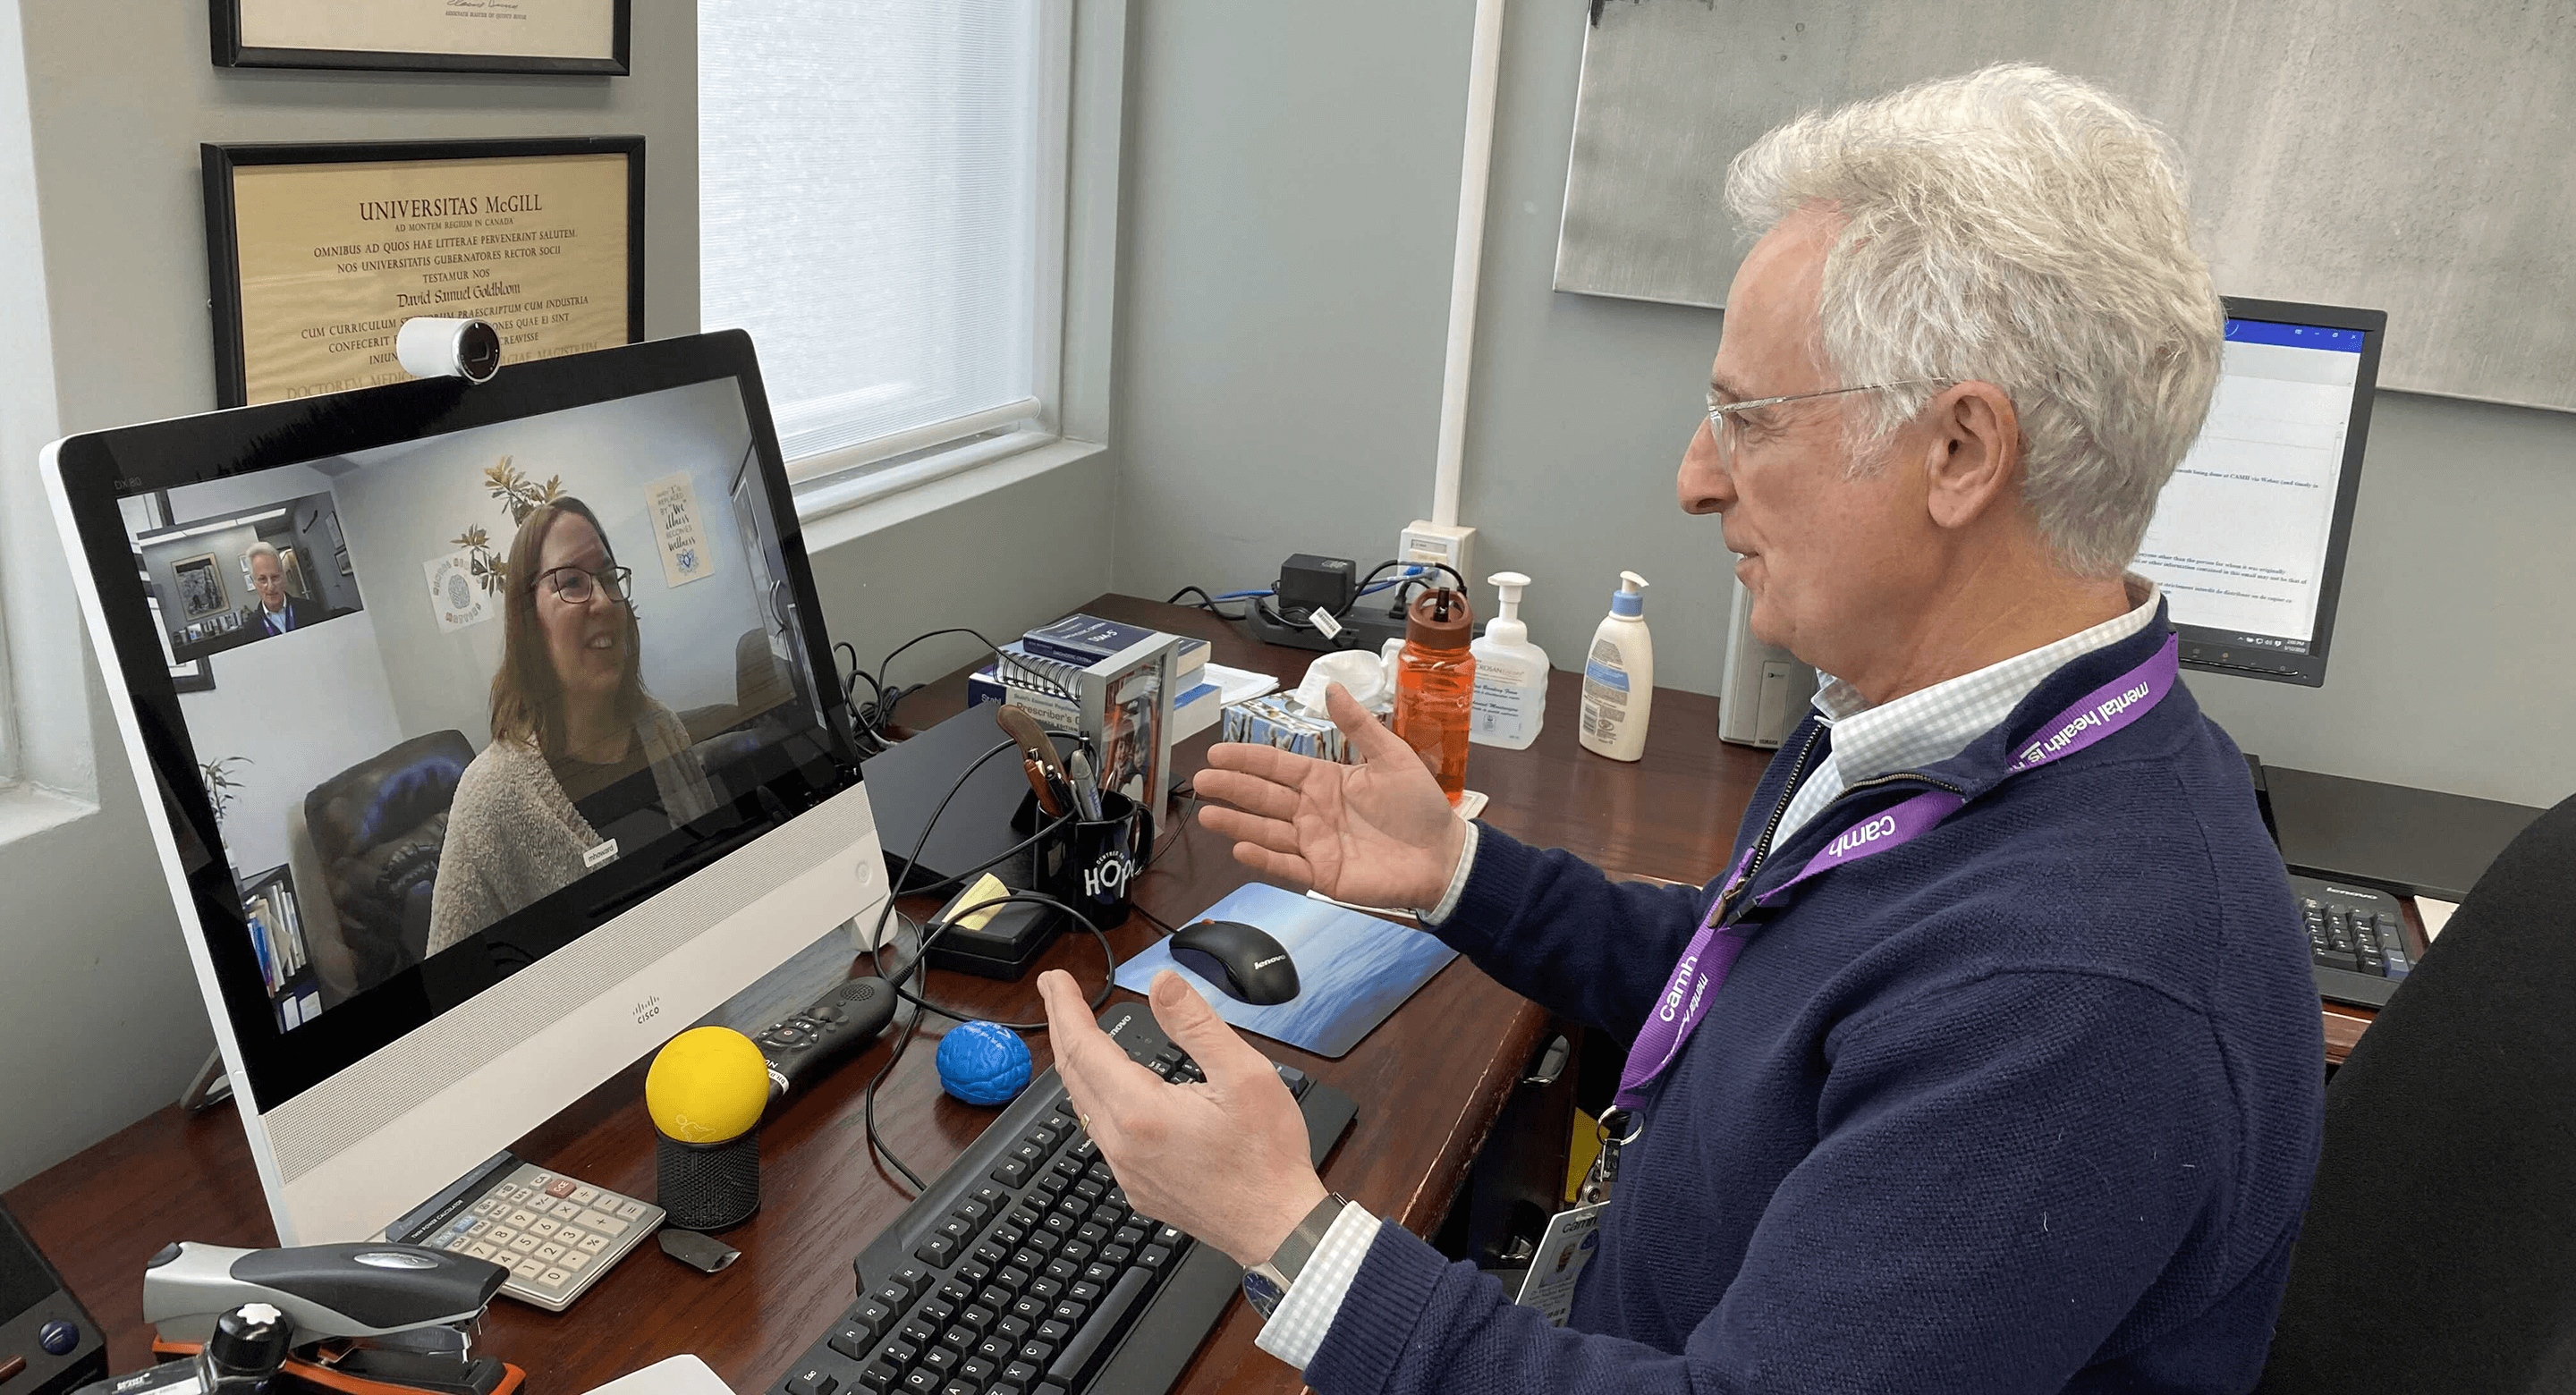 CAMH physician providing virtual care.